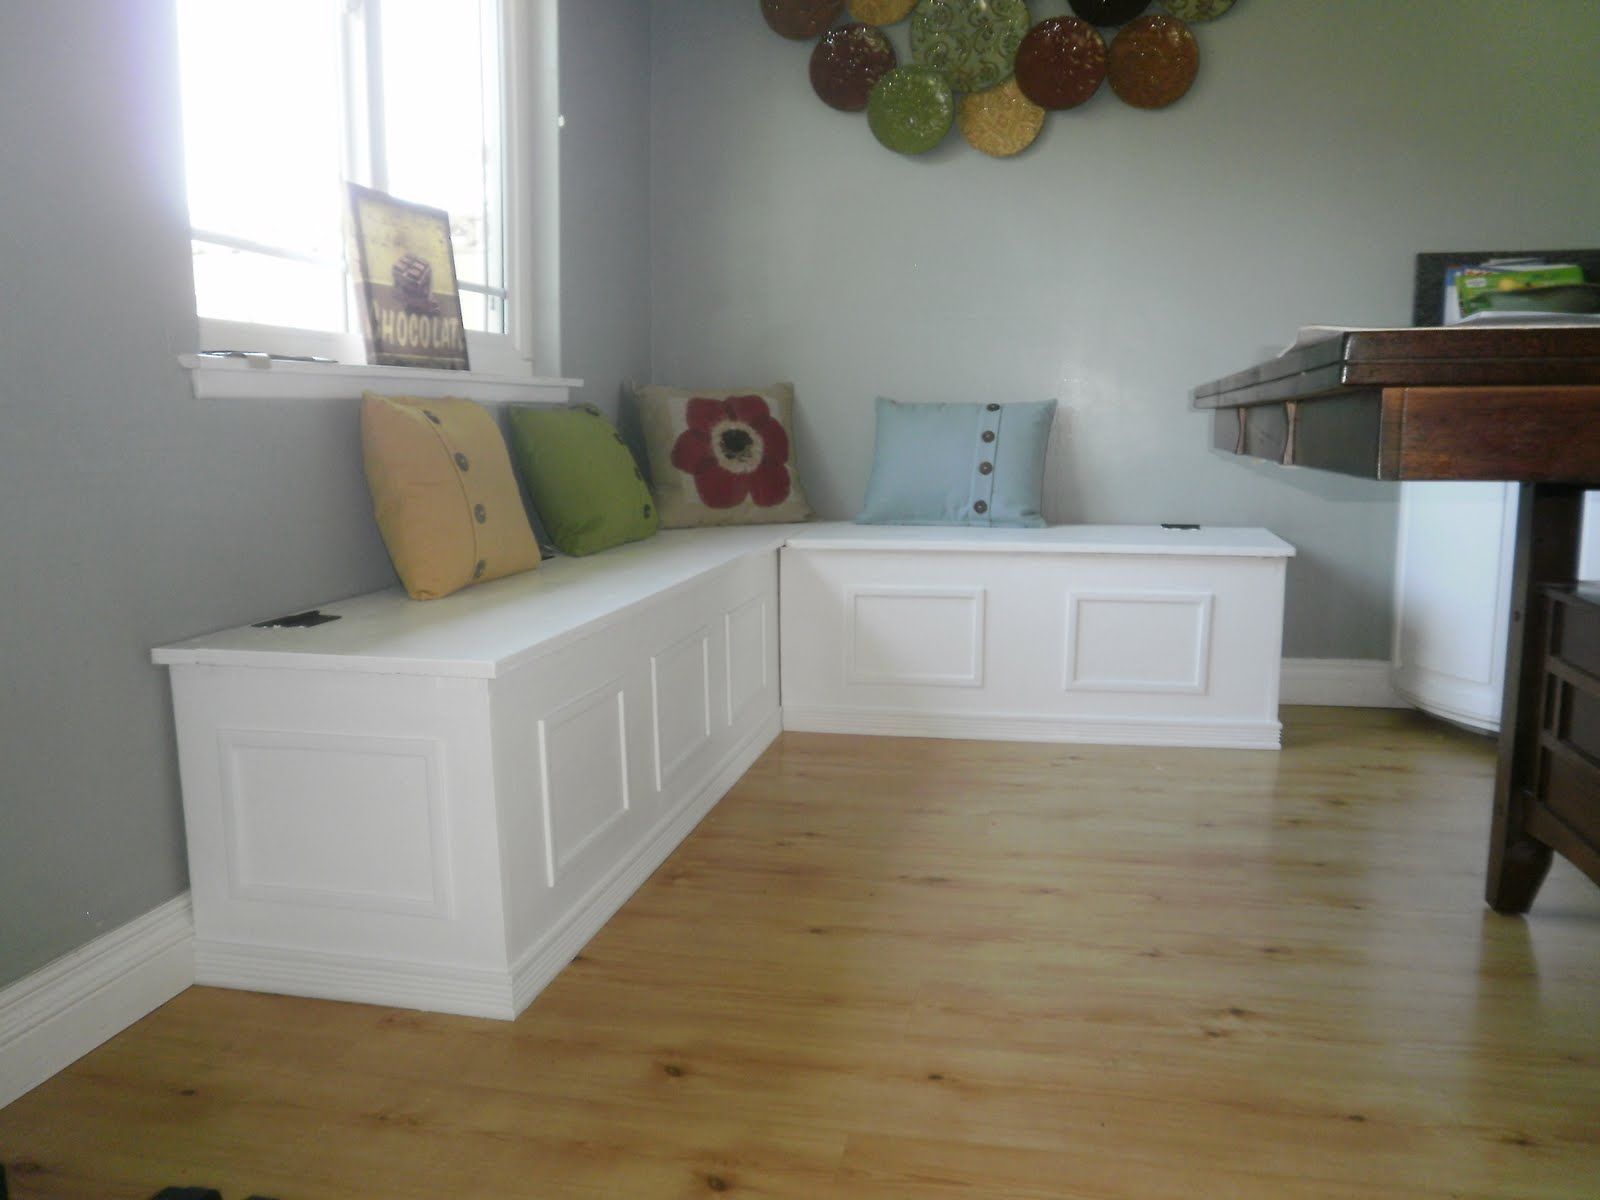 Kitchen Bench Seating With Storage How Much Does A Cabinet Cost The Hugie Happenings July 2011